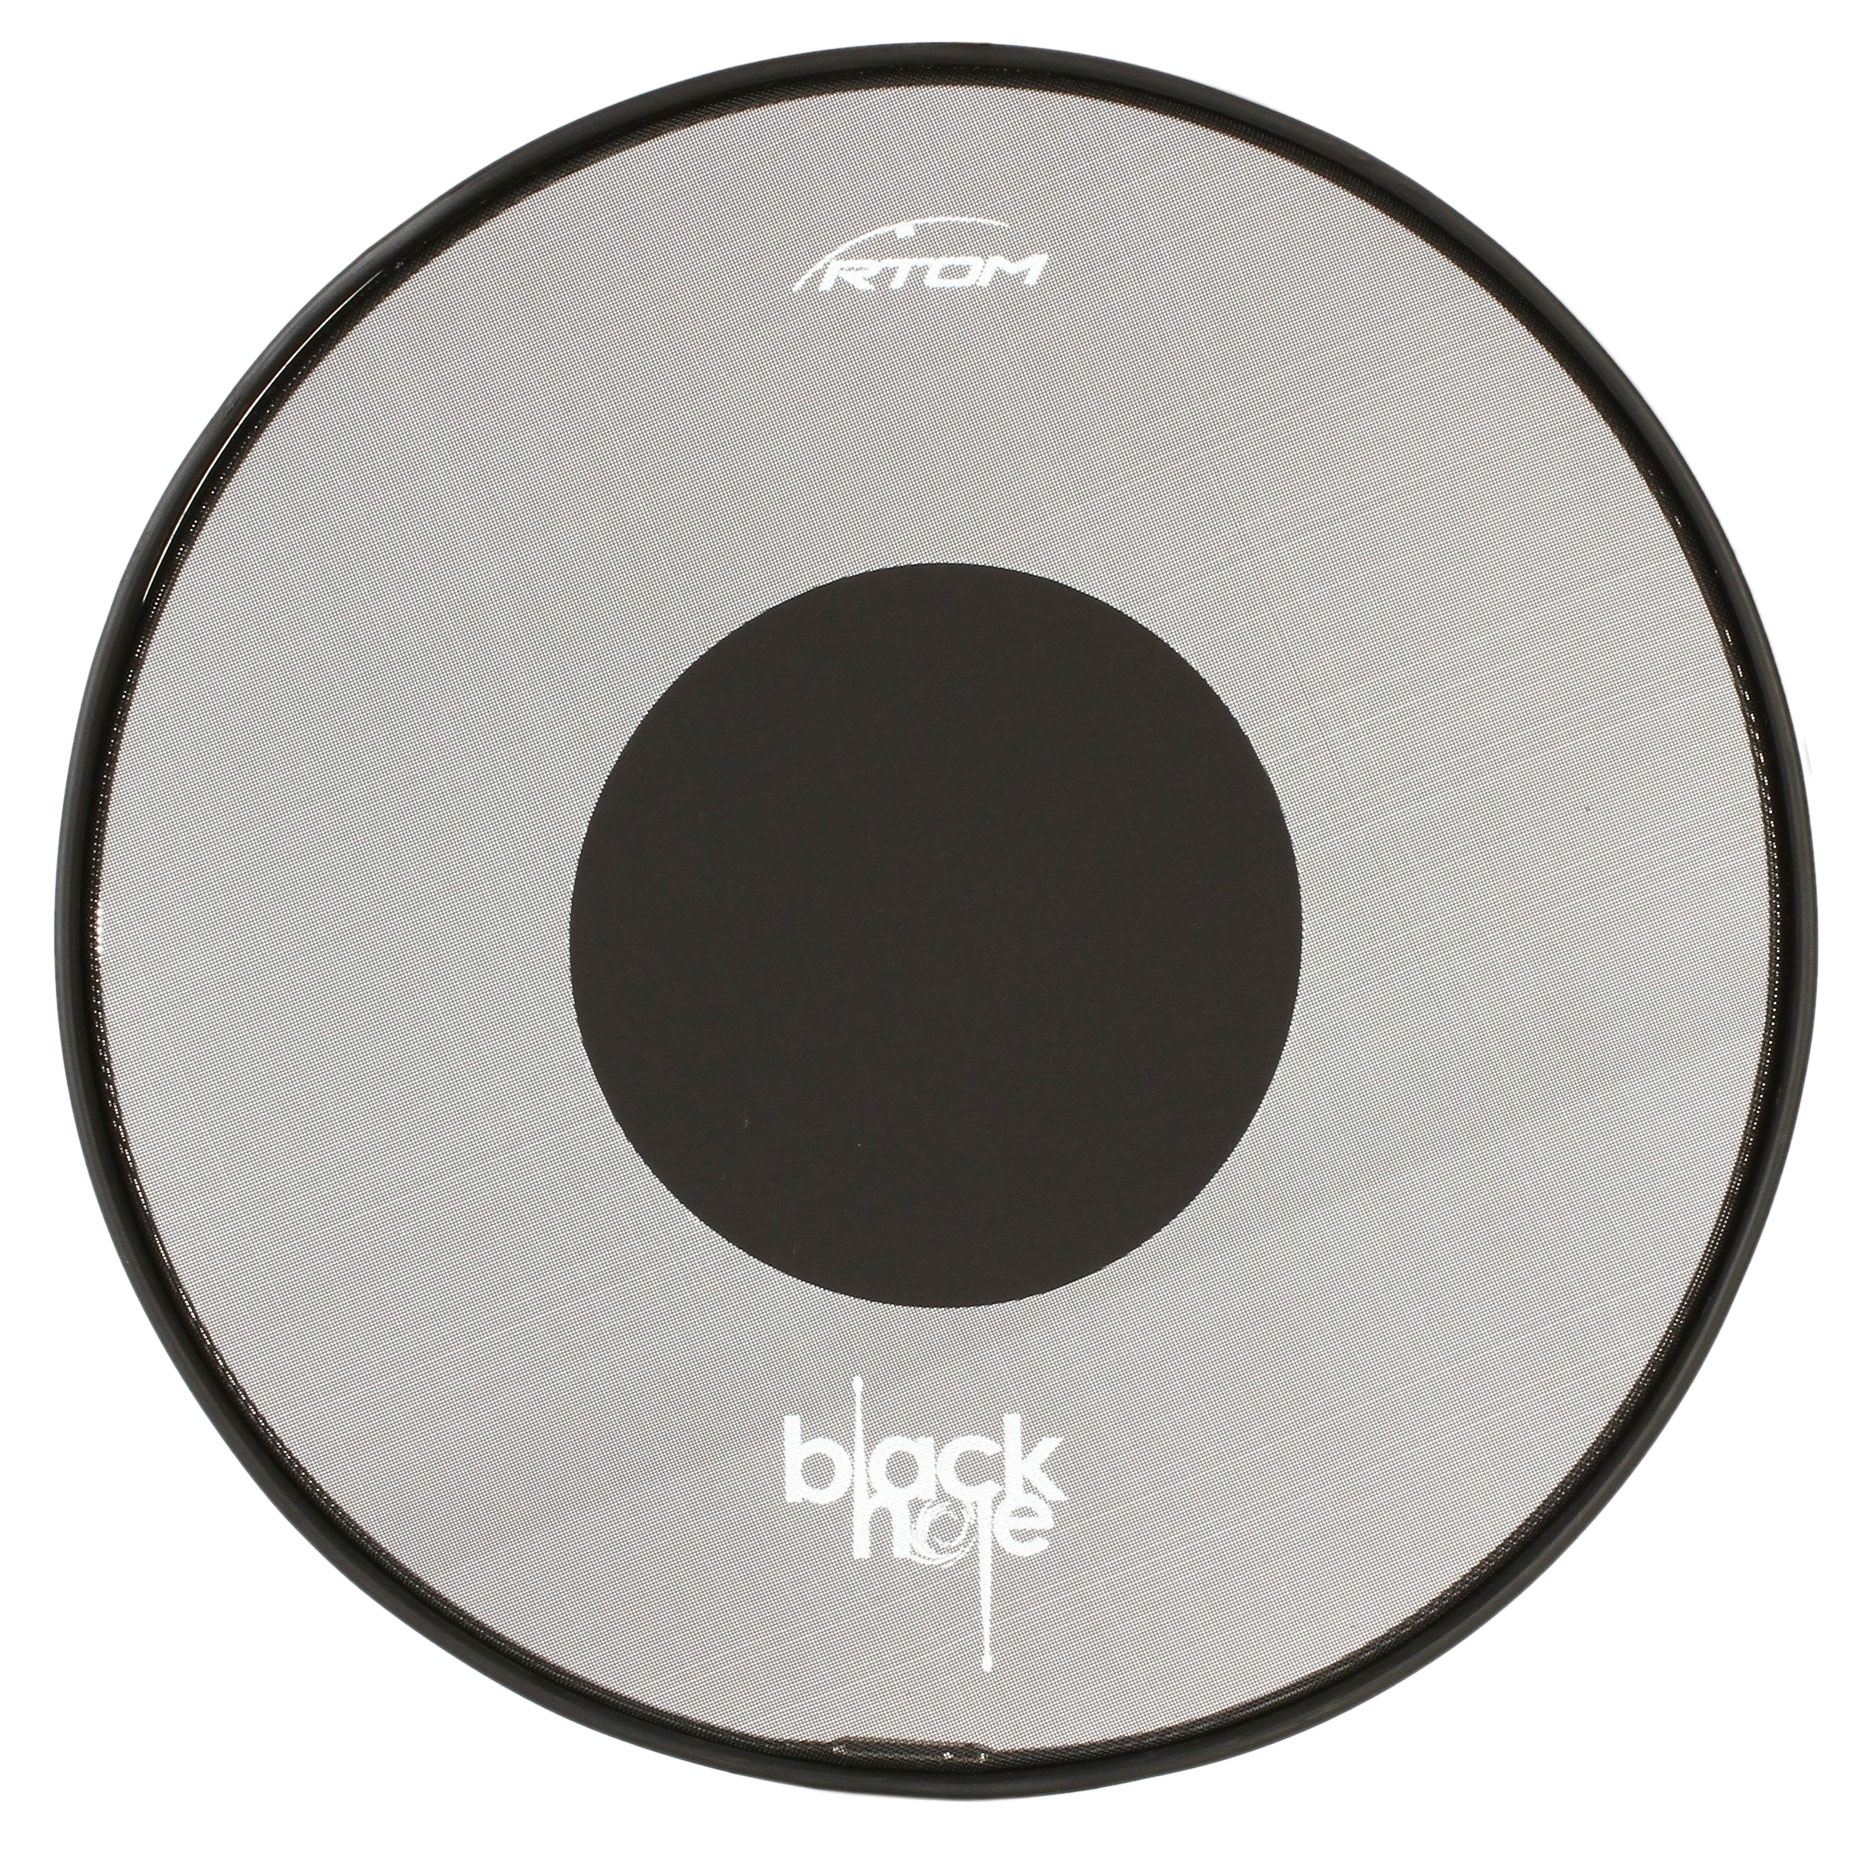 "RTOM 22"" Black Hole Snap-On Bass Drum Practice Pad"